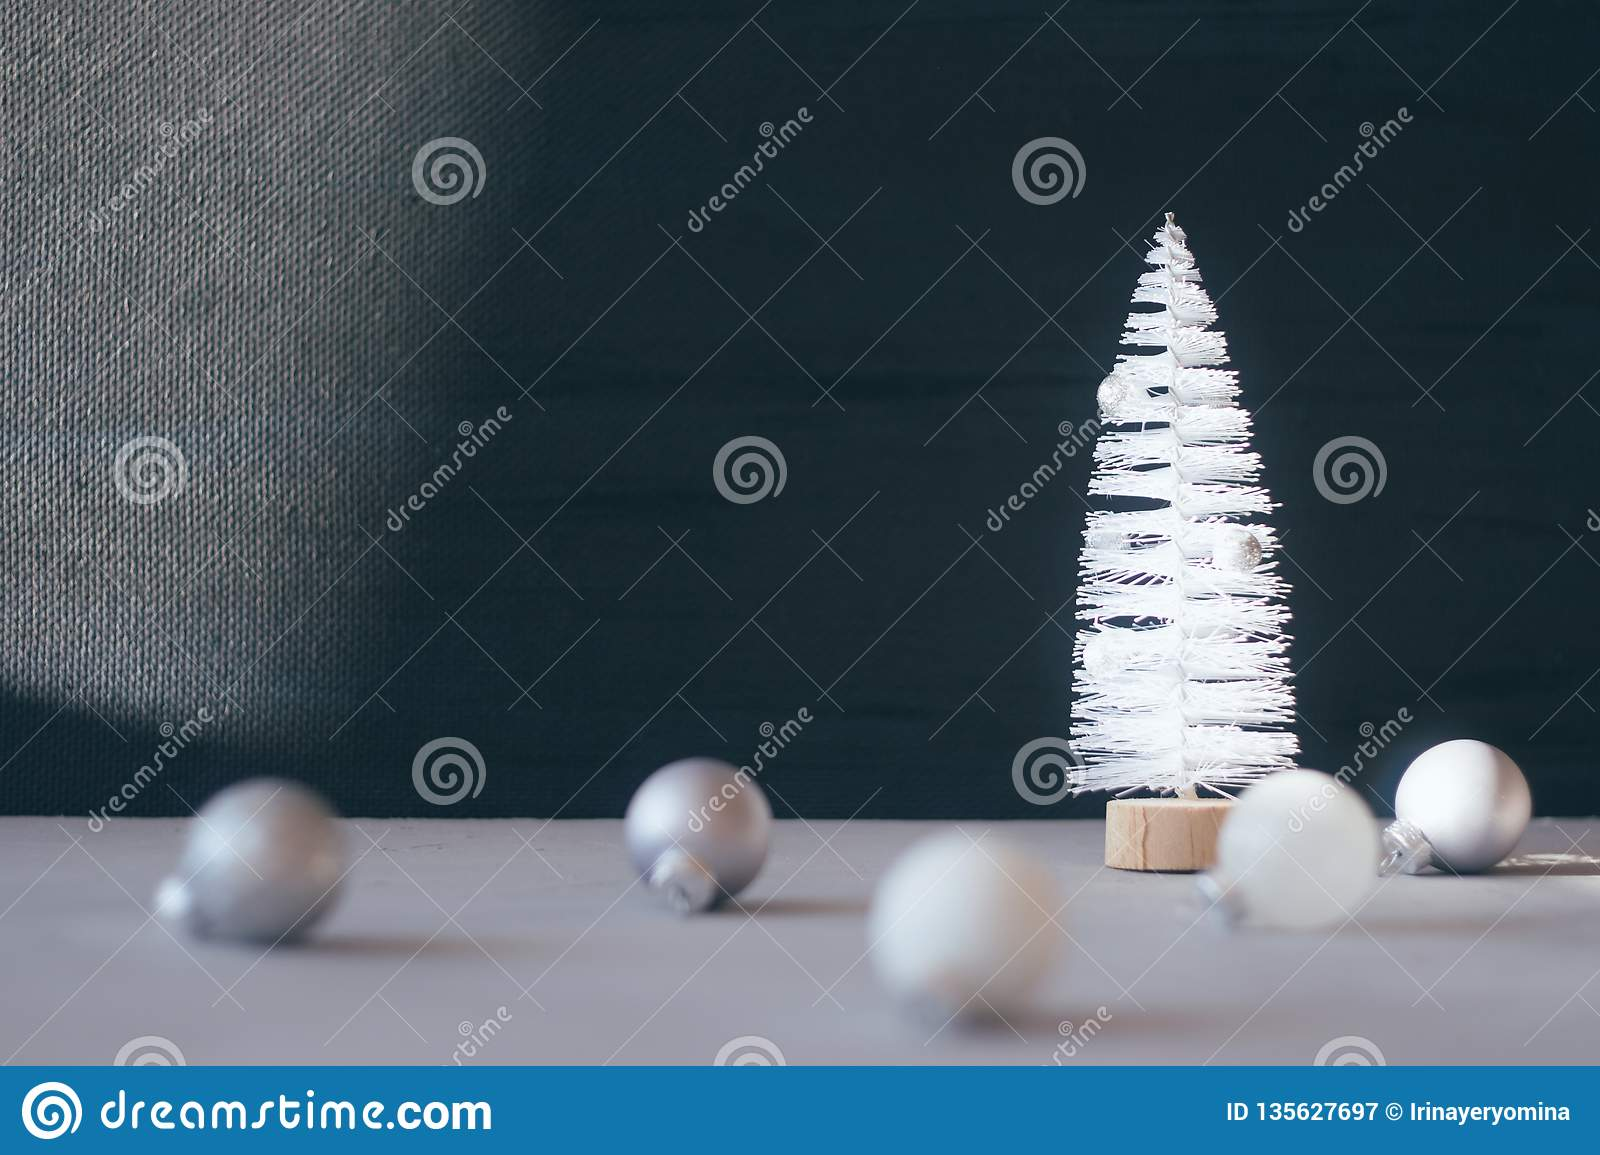 Modern minimal Christmas festive gift winter background. Close up white Christmas tree, silver and white ornament ball on black